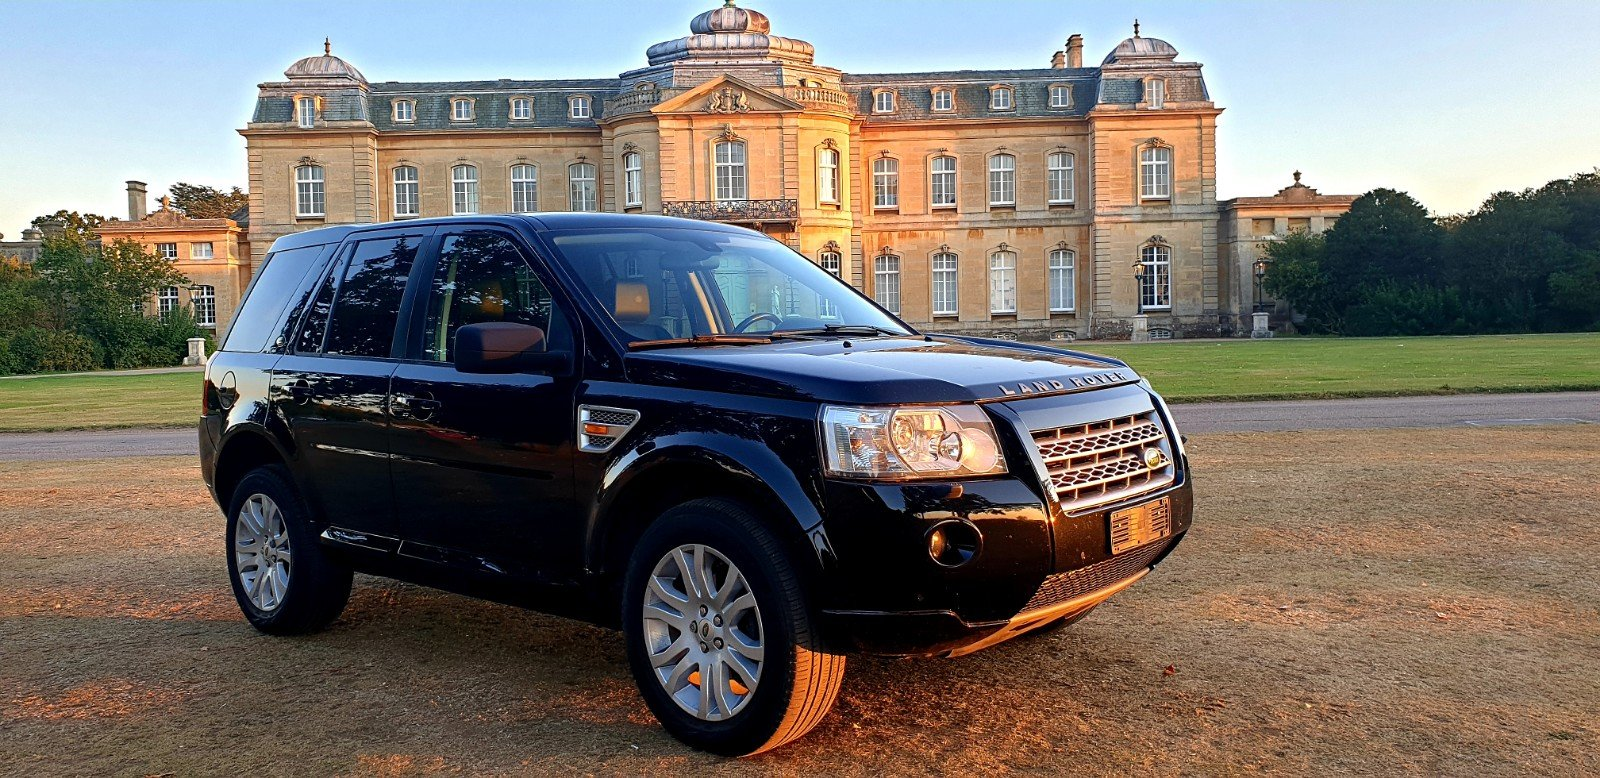 2008 LHD LAND ROVER FREELANDER 2.2 td4 LEFT HAND DRIVE For Sale (picture 1 of 6)